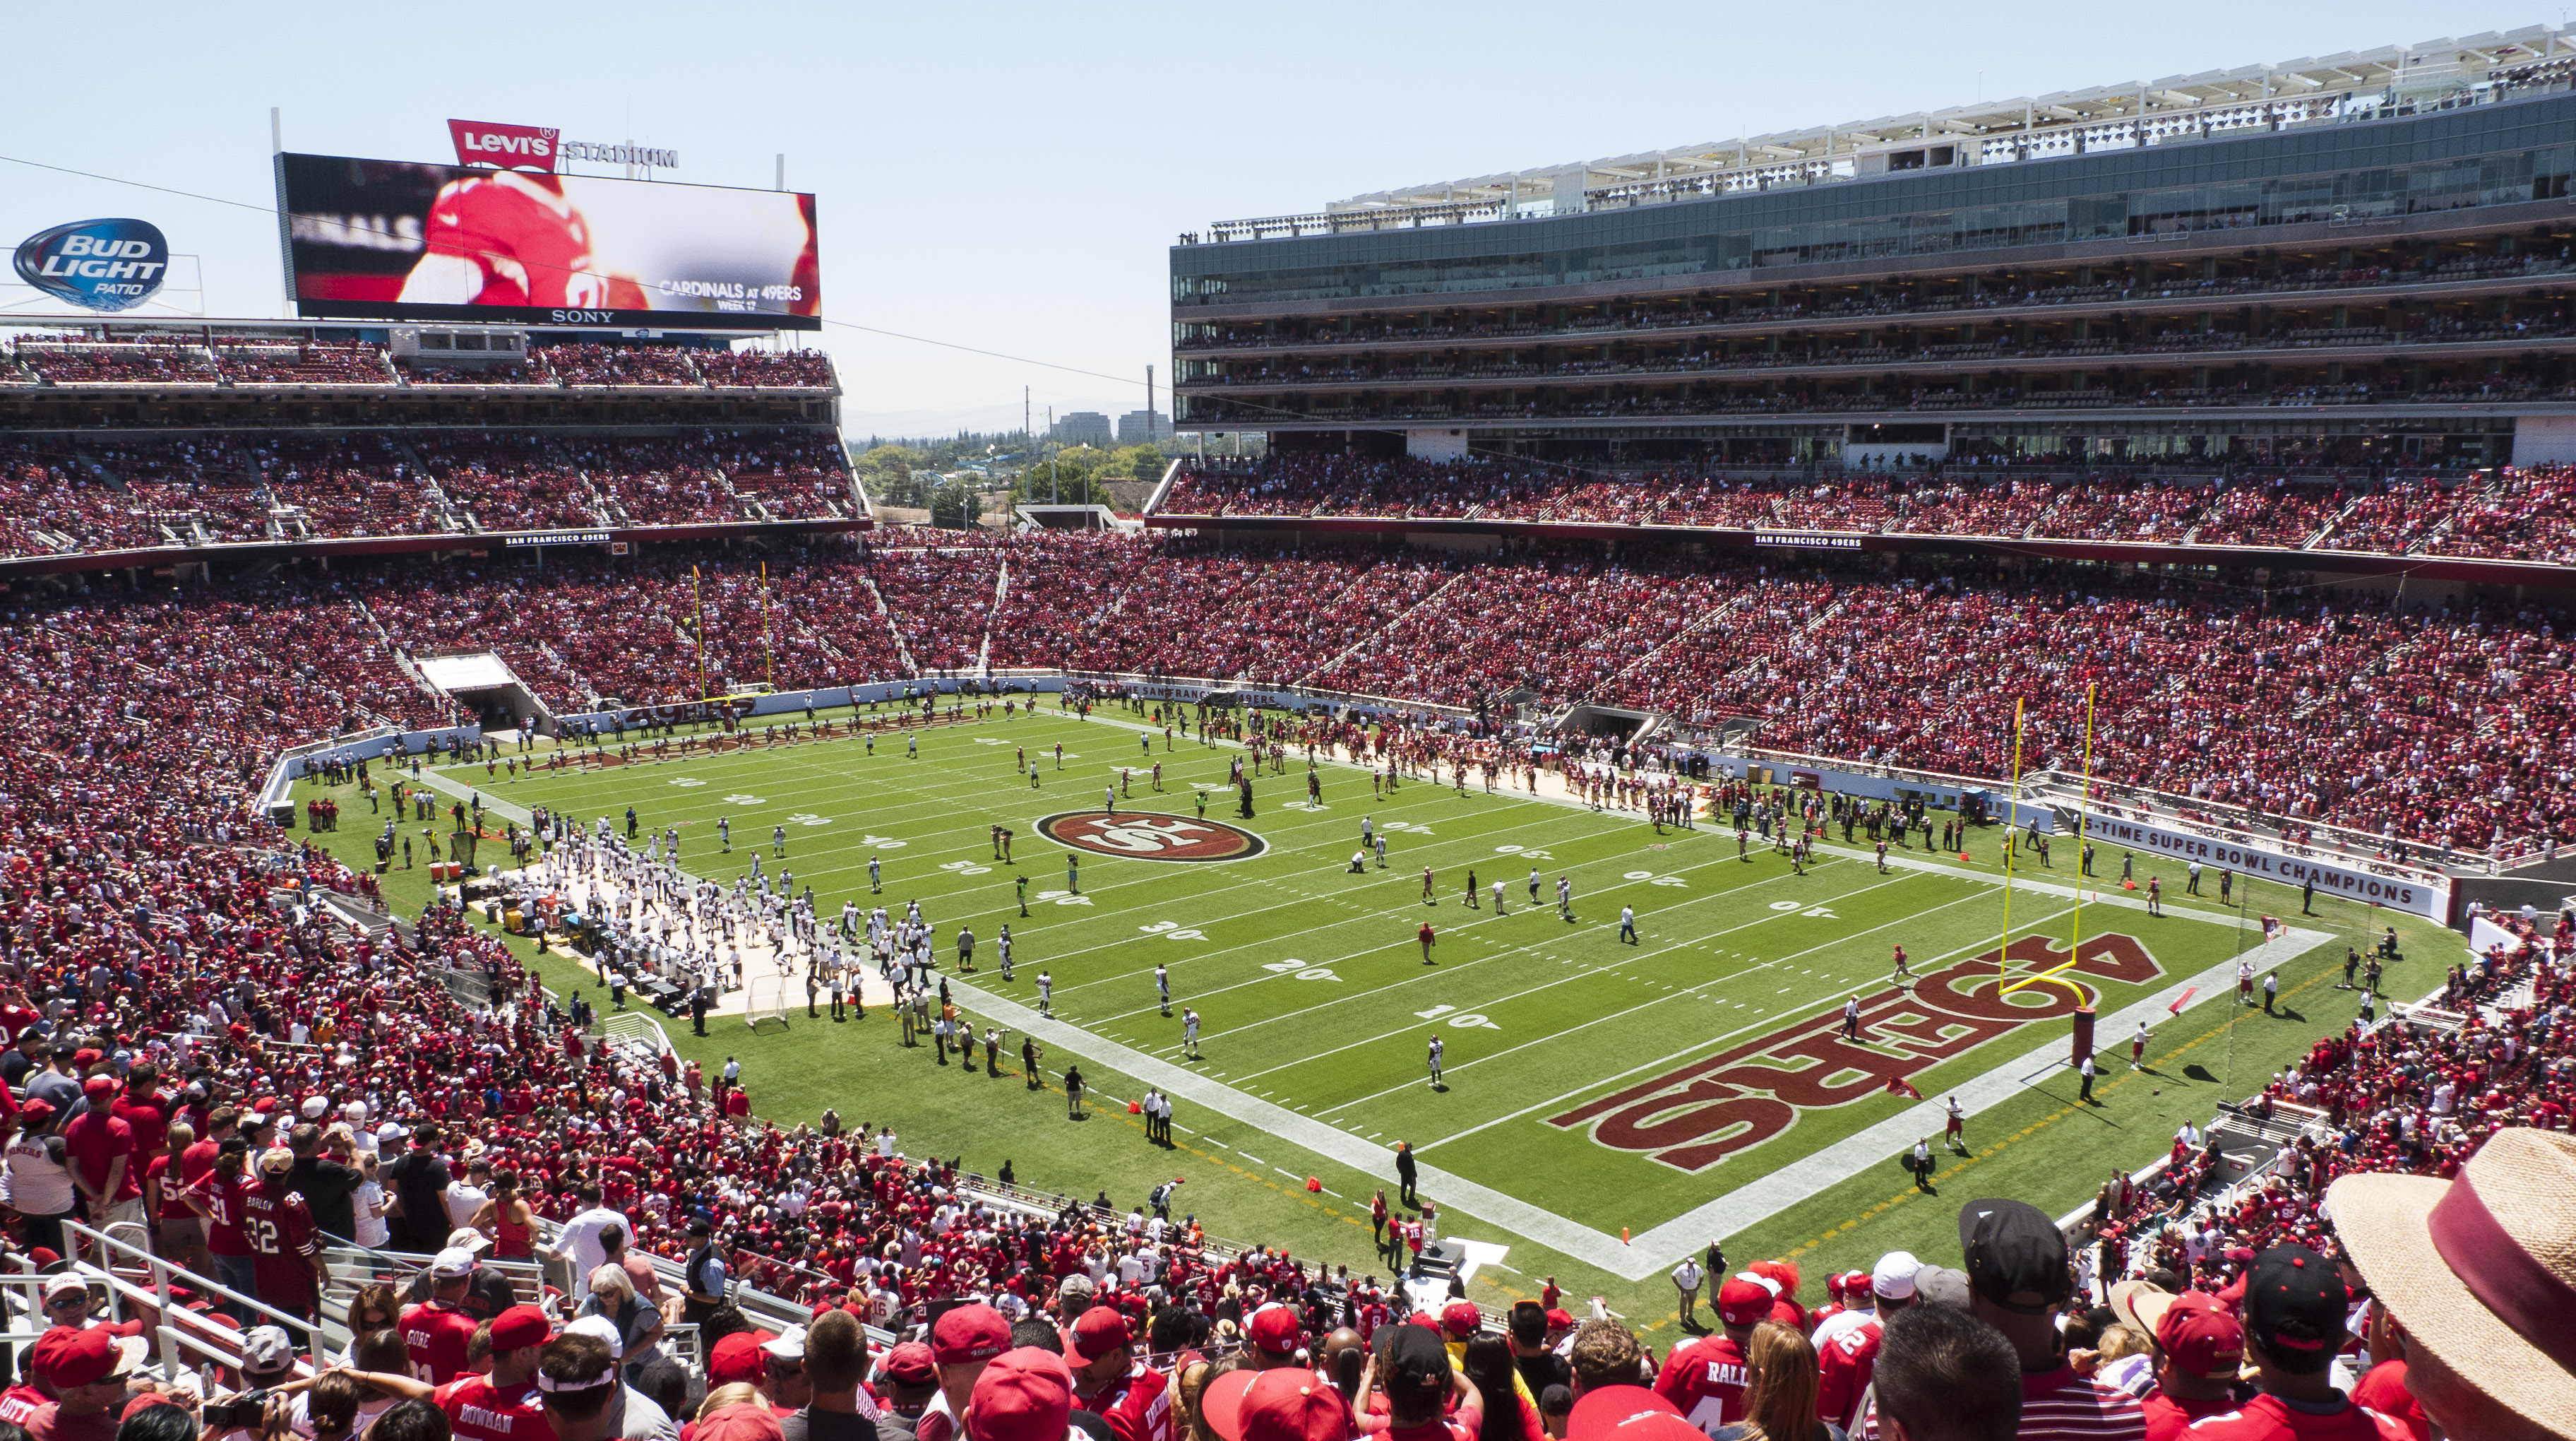 Best Places to Watch the San Francisco 49ers (Other than Levi's Stadium)